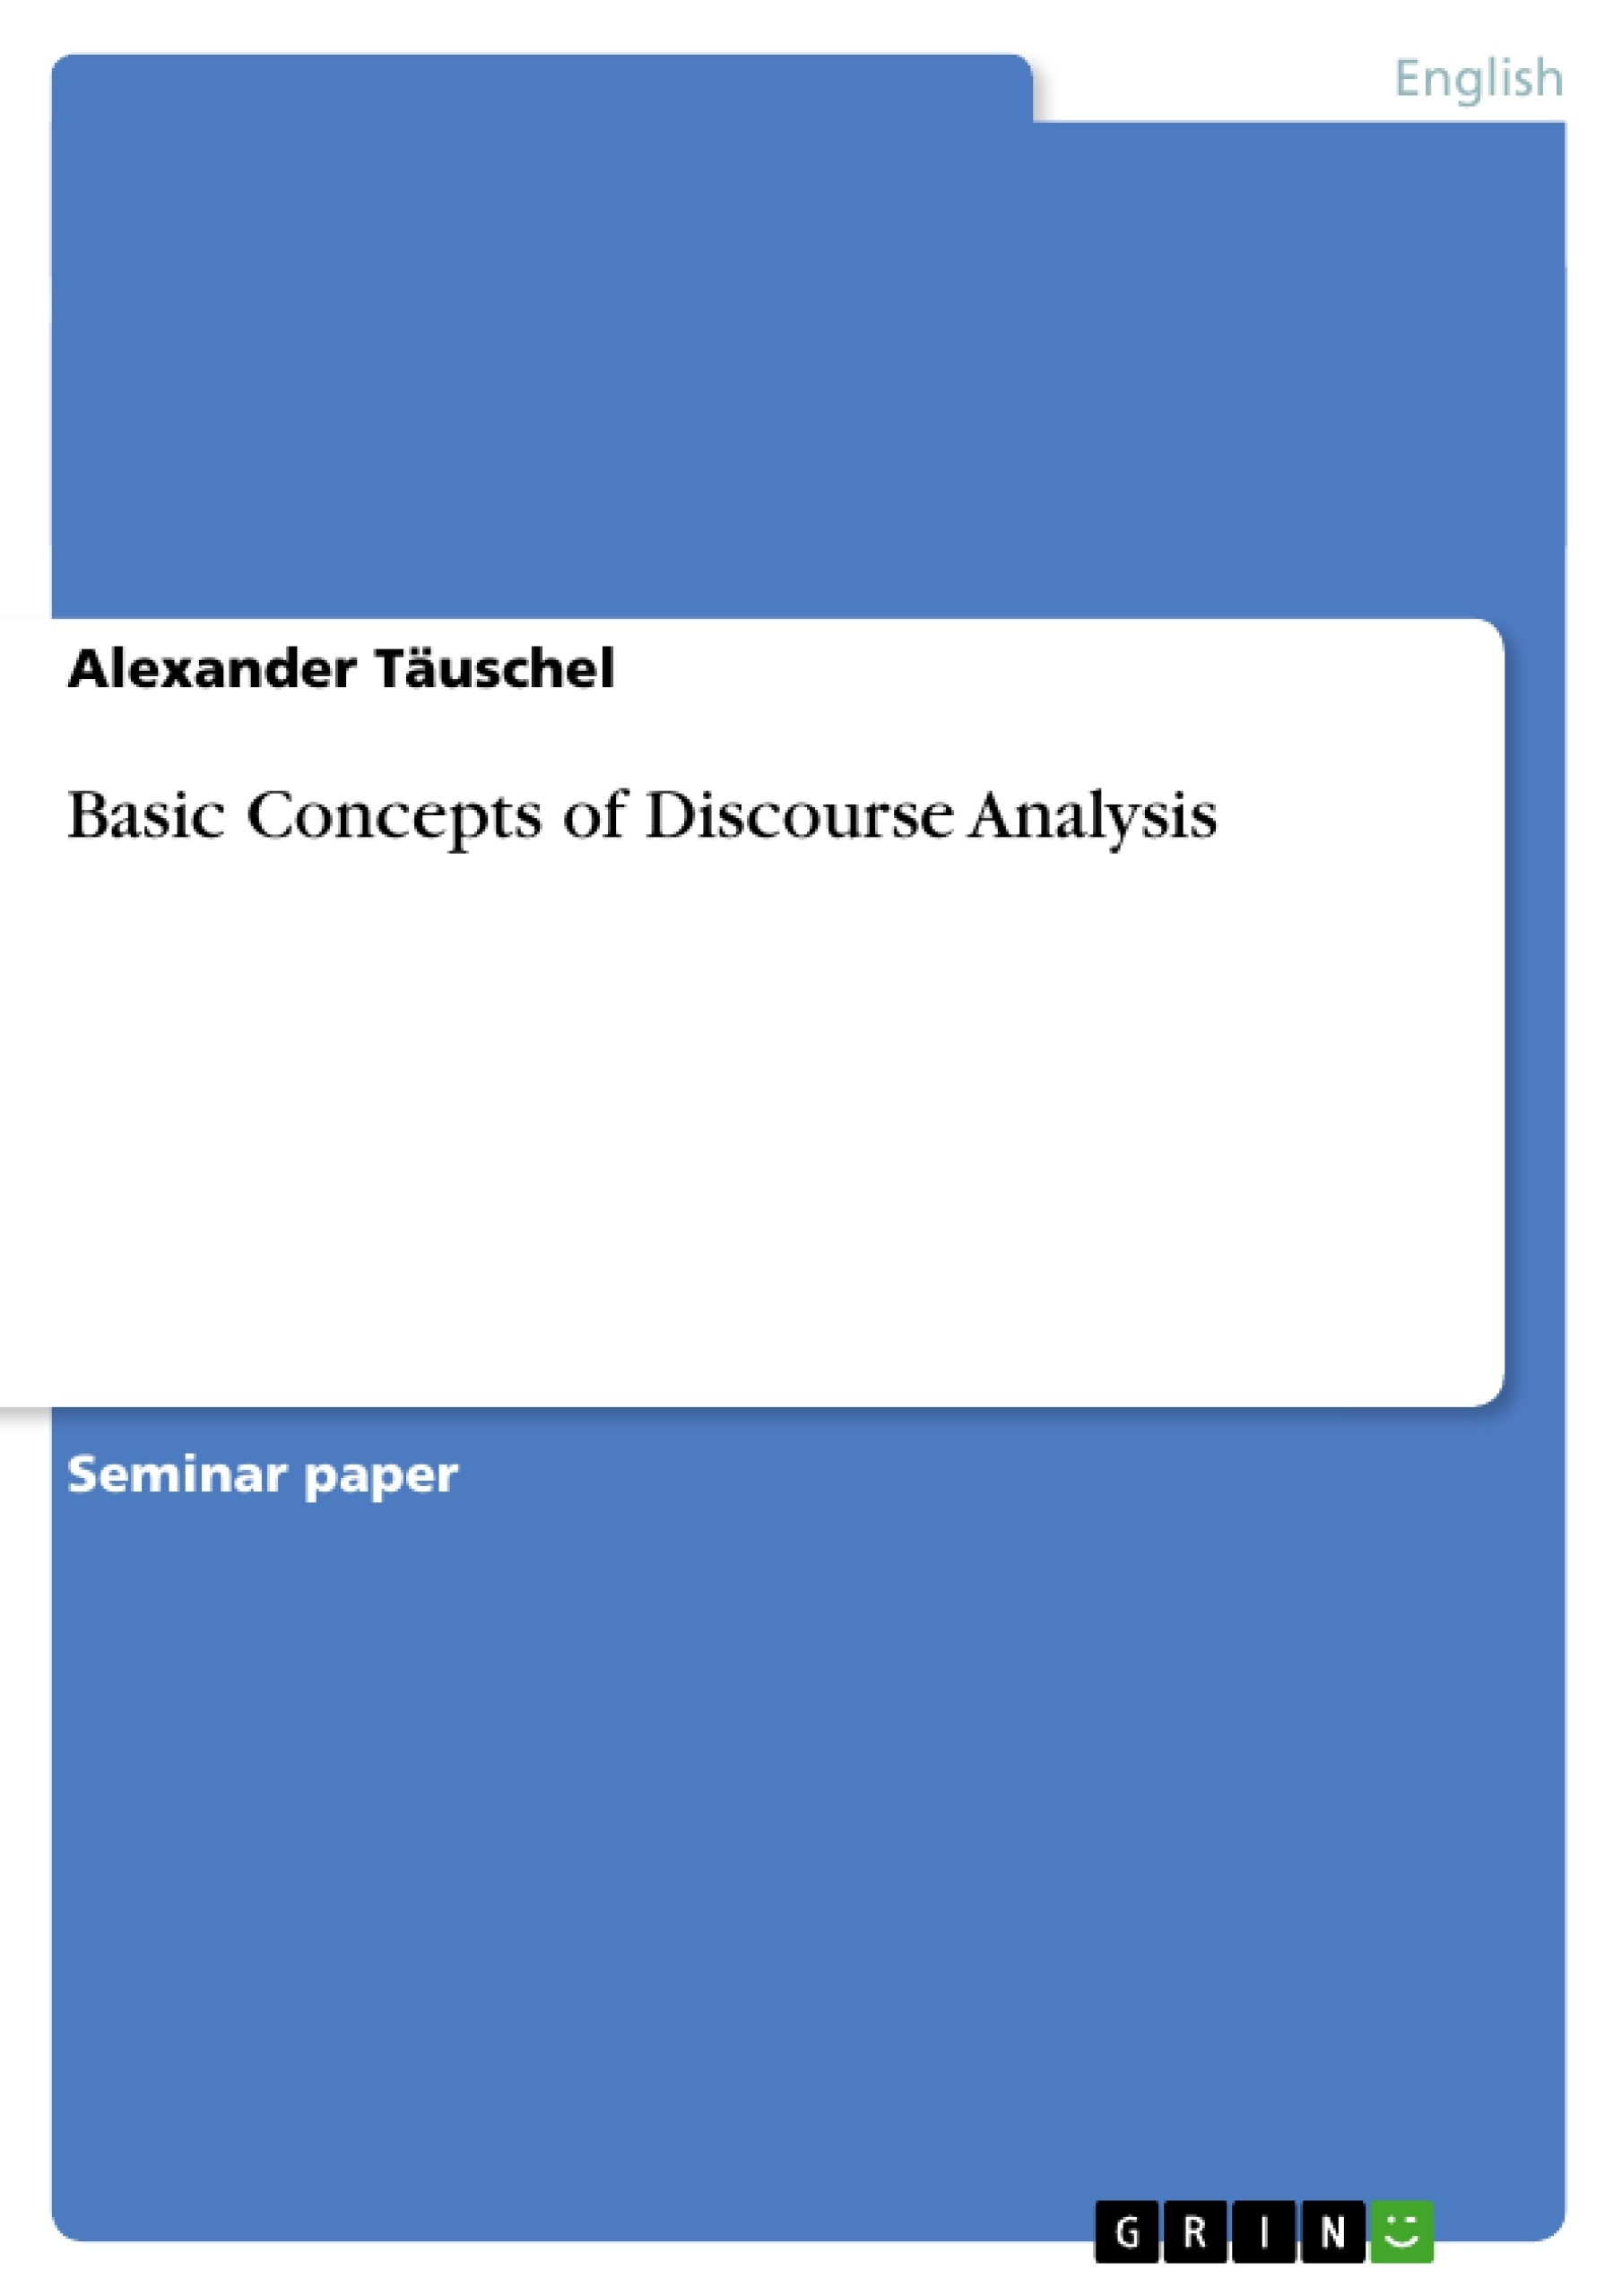 Title: Basic Concepts of Discourse Analysis